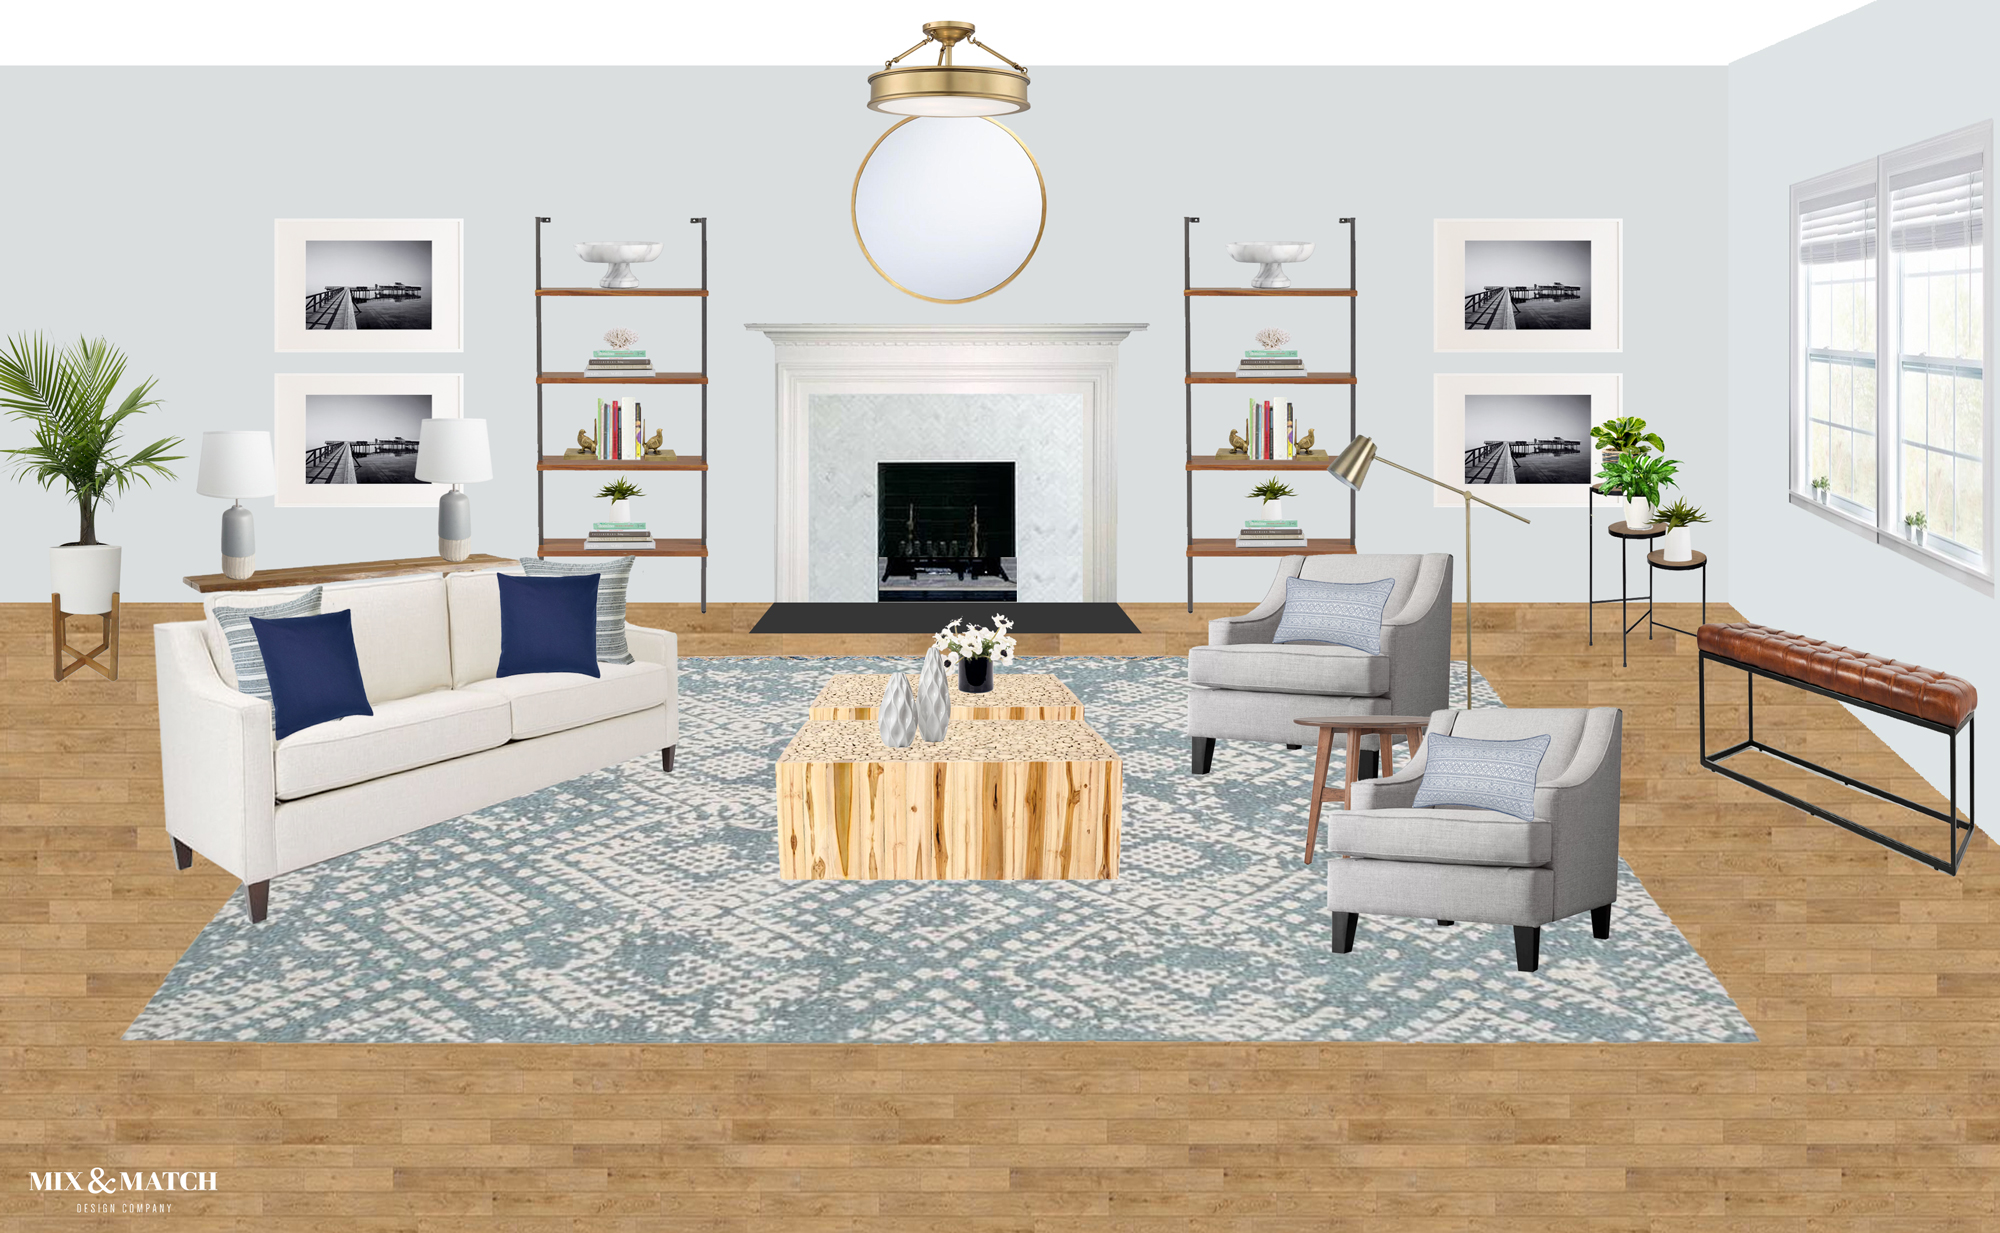 Are you redecorating your home in 2019? Let's chat! My approachable and affordable e-design packages might be just the right fit. Get the design help you need from Mix & Match Design Company's virtual interior design services and turn your home into a space you love! // coastal modern living room, mid-century coastal living room, blue living room